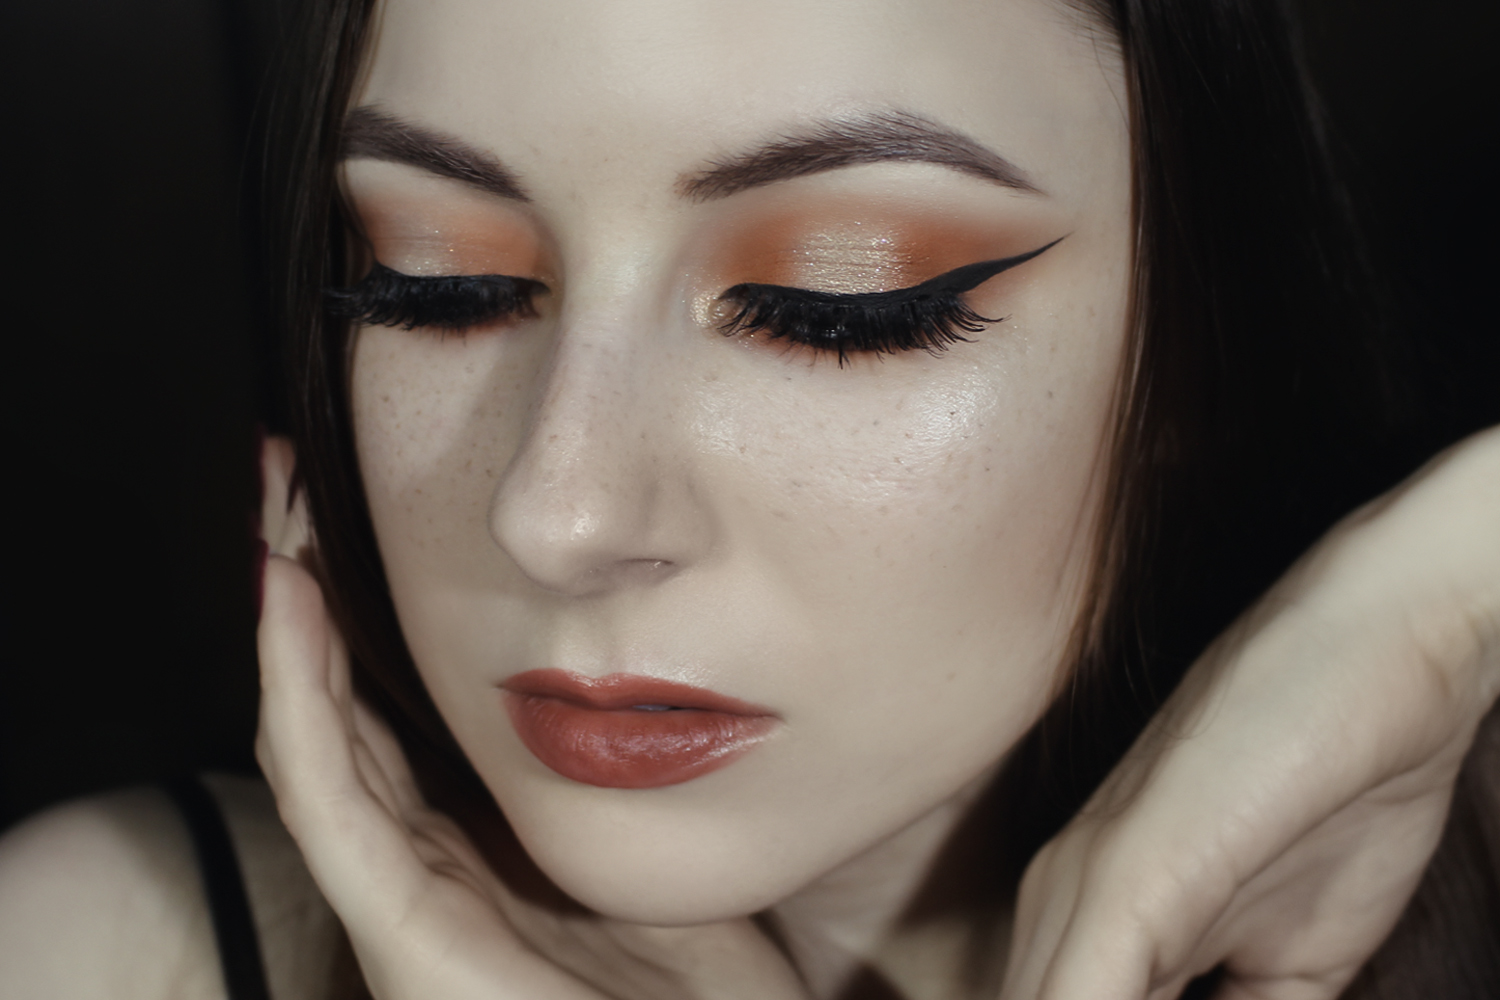 a close up portrait of a face with a perfect instagram makeup look